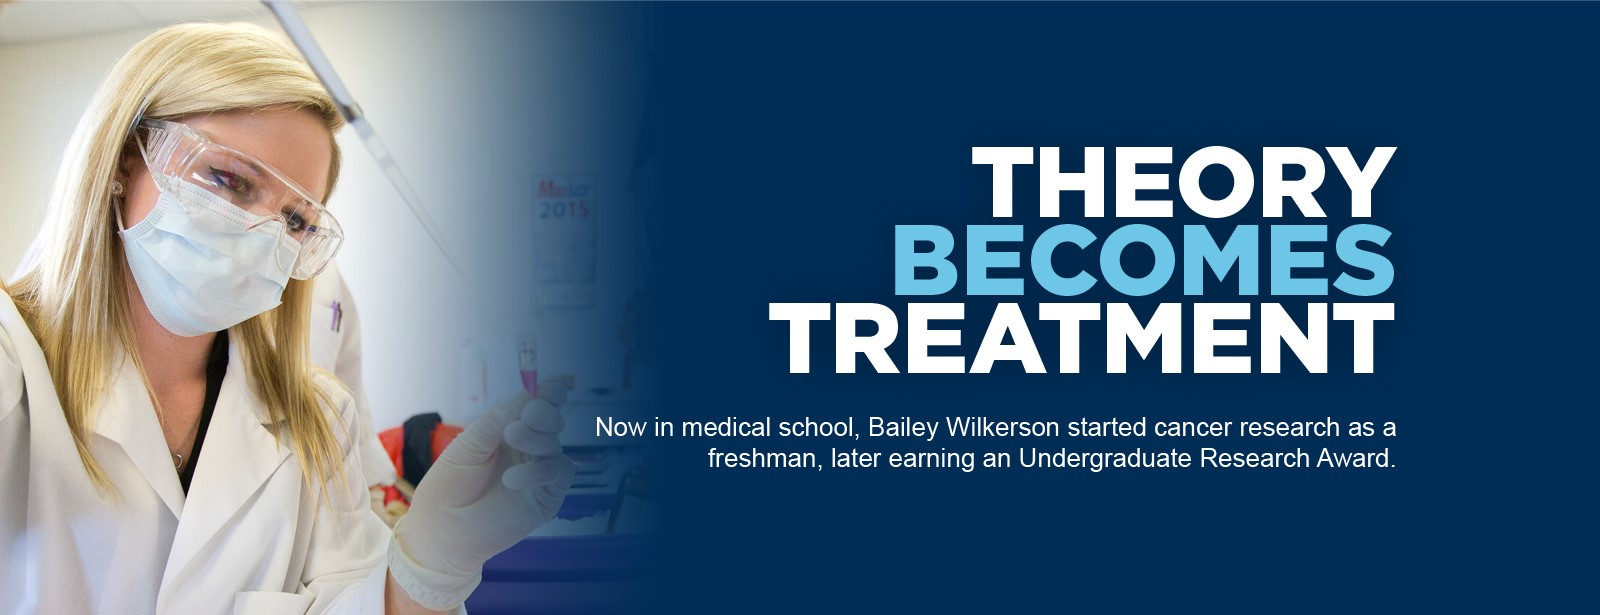 Now in medical school, Bailey Wilkerson started cancer research as a freshman with the help of an Undergraduate Research Award.